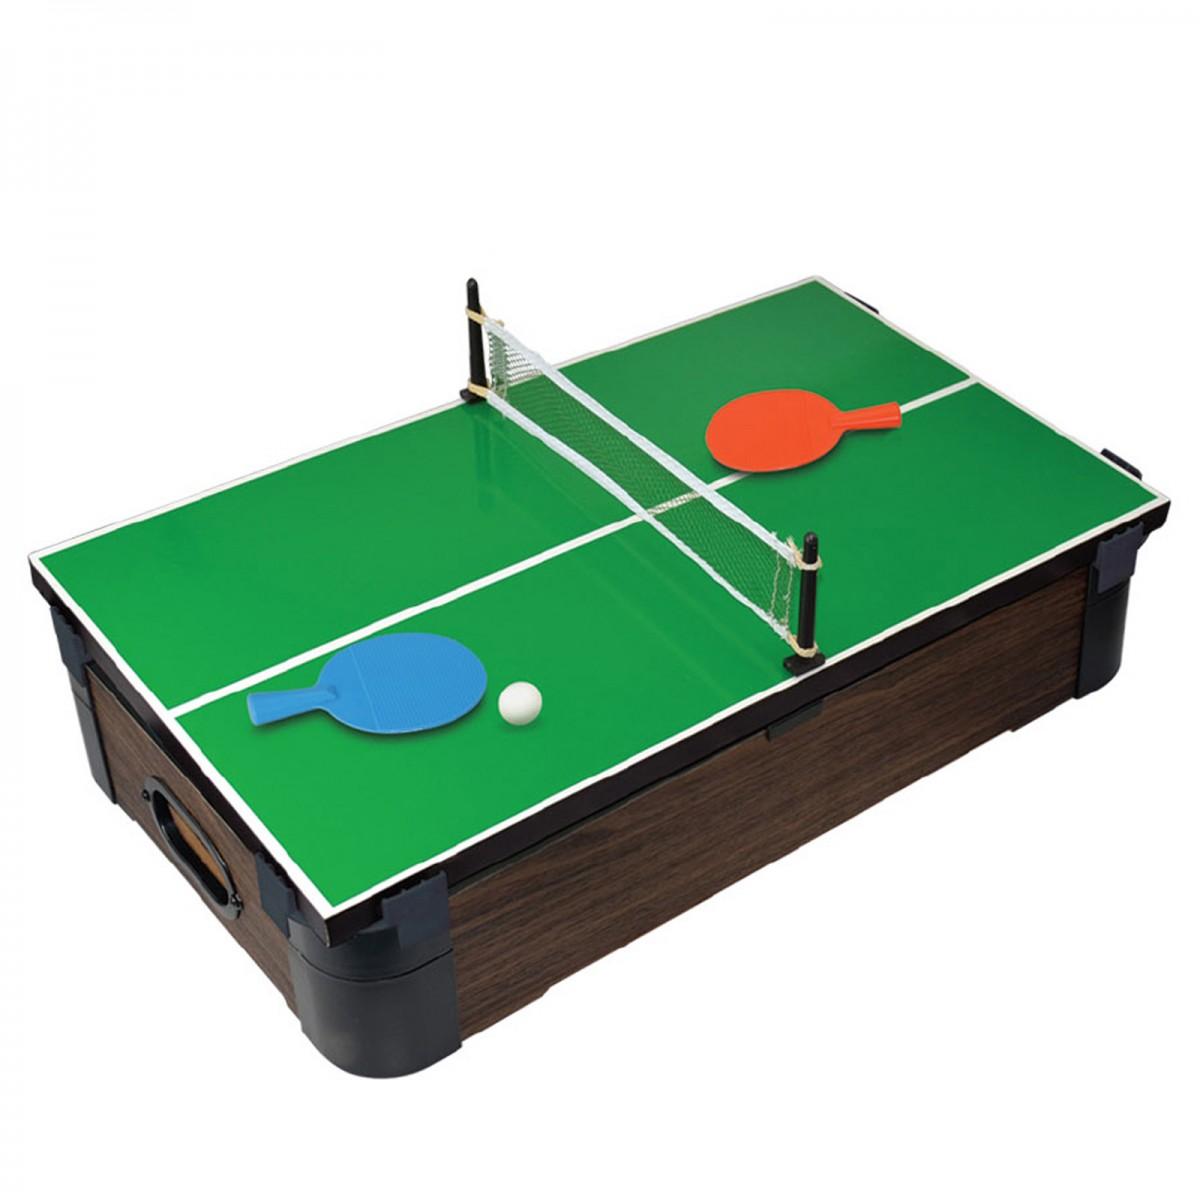 20 5 in 1 wood tabletop pool ping pong chess checker backgammon. Black Bedroom Furniture Sets. Home Design Ideas